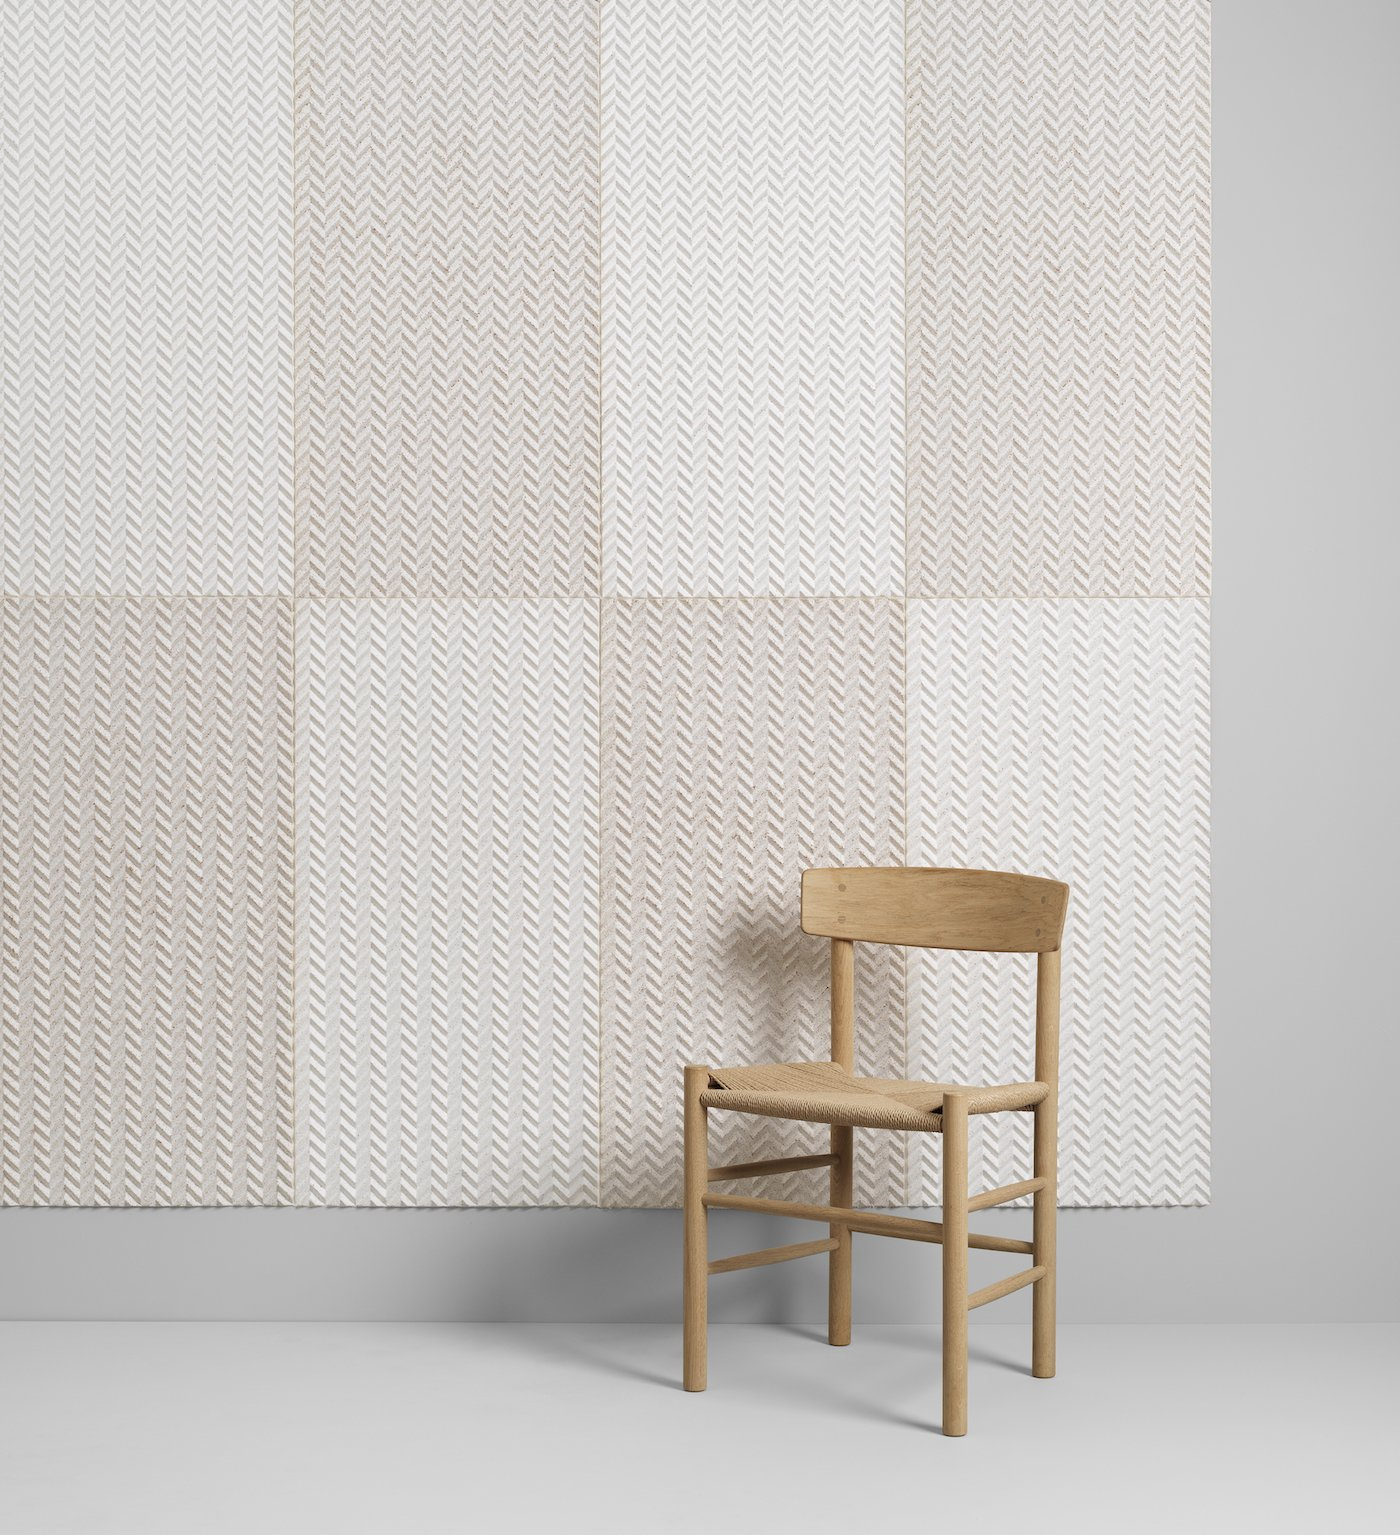 Eco Edition_Form Us With Love_Baux Acoustic Pulp_Sustainable architecture interiors products 5